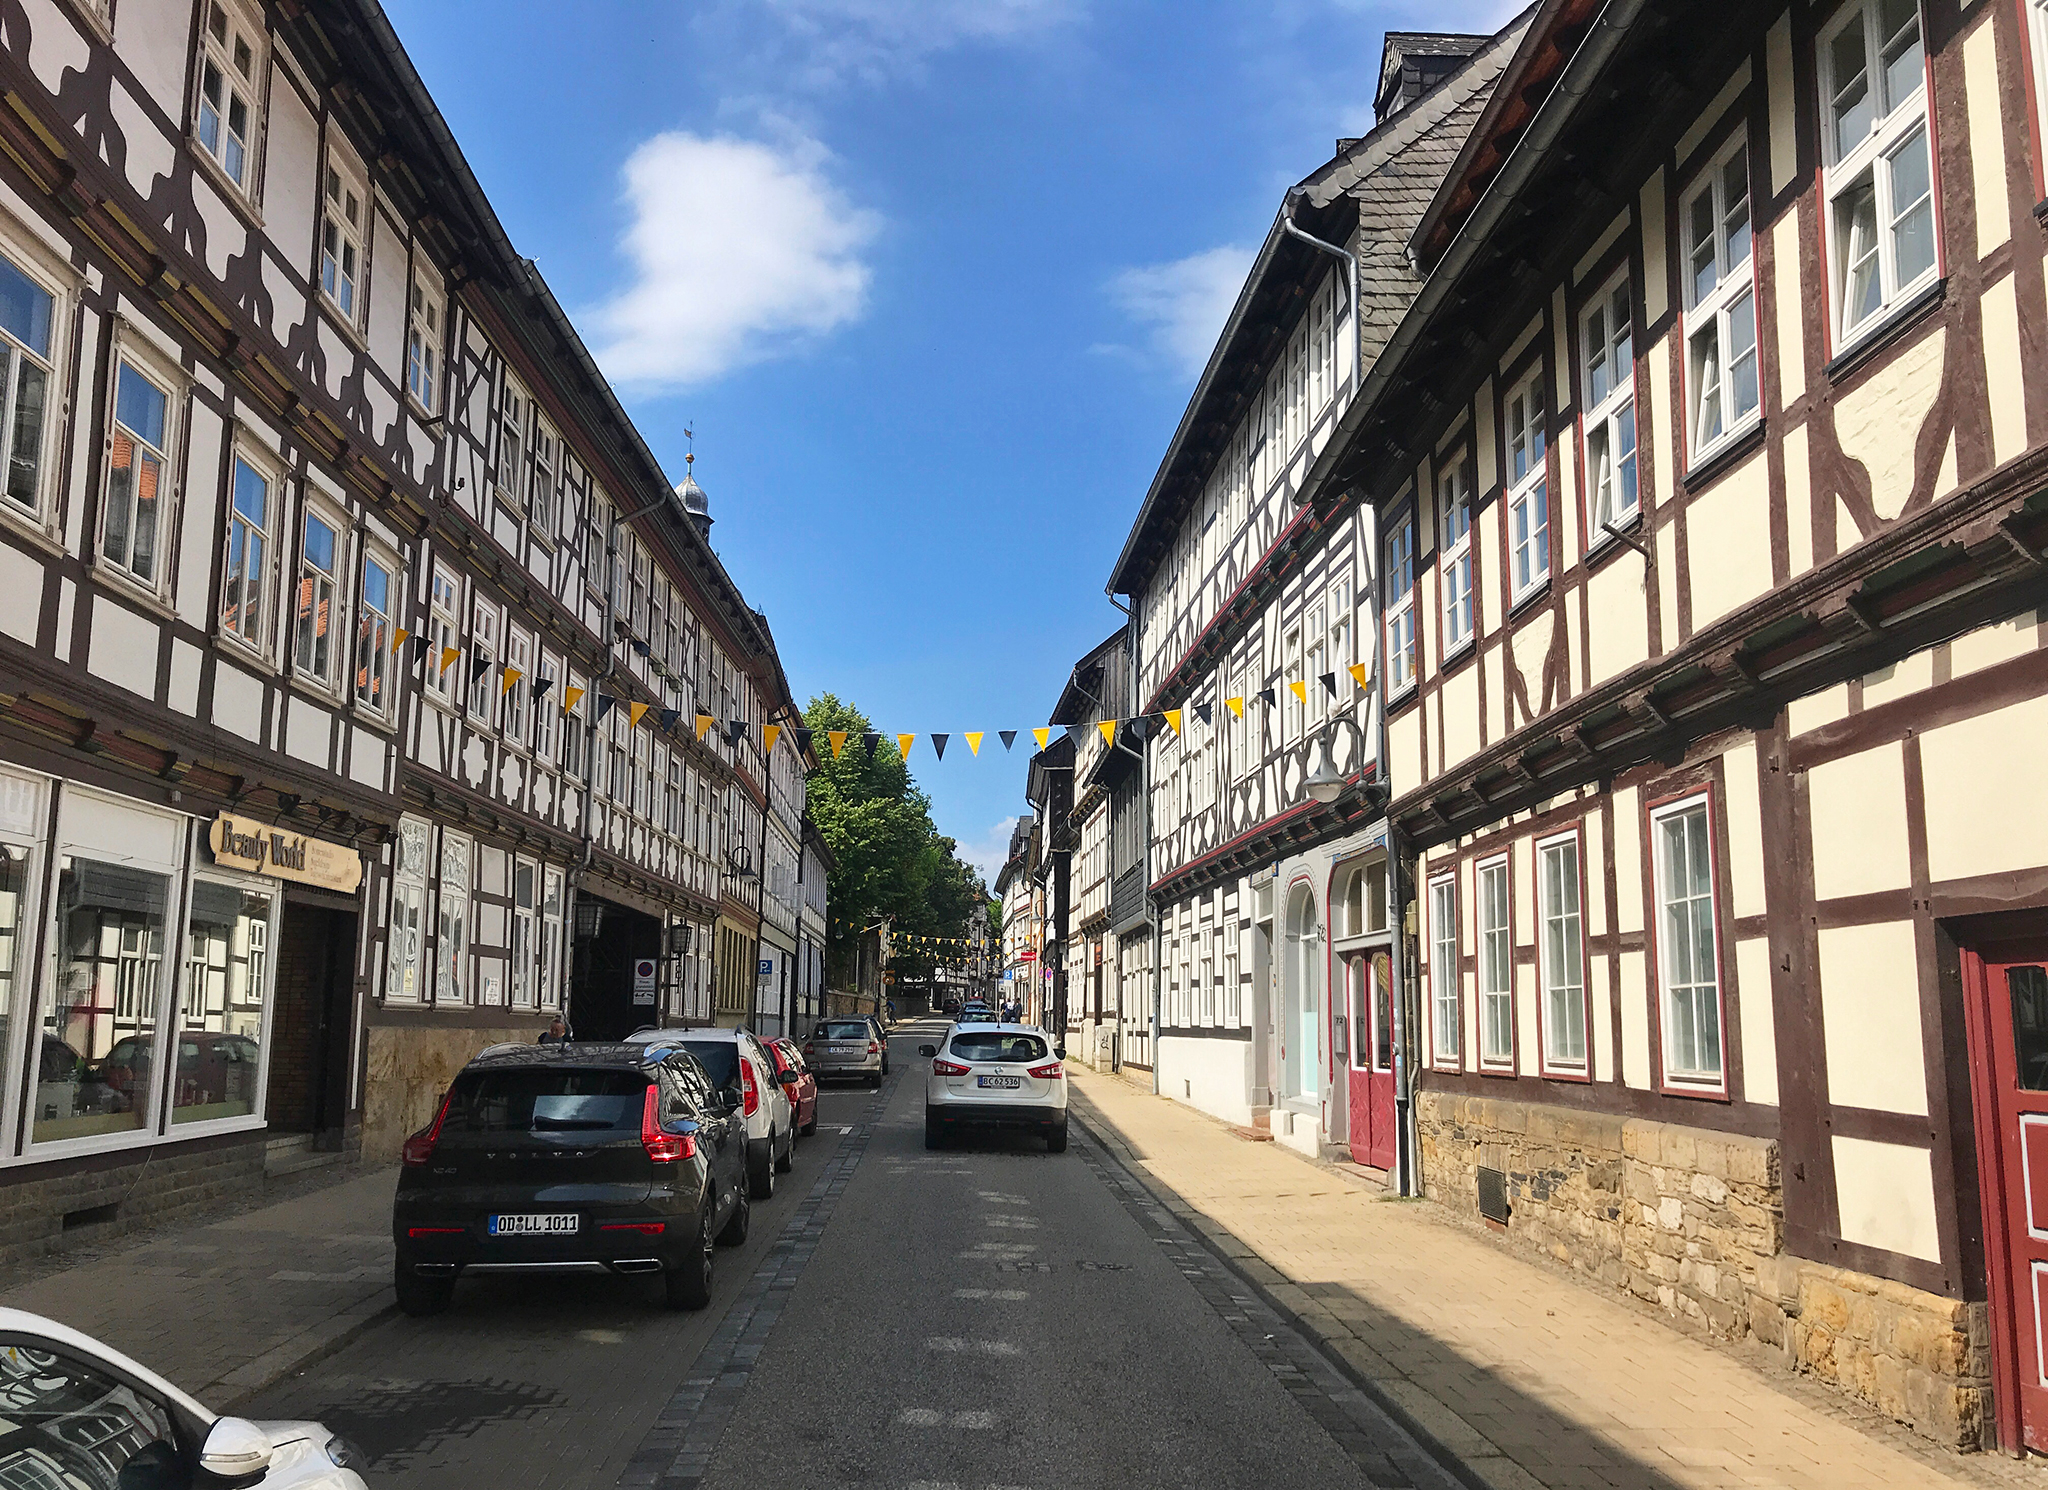 Street view in the old part of Goslar